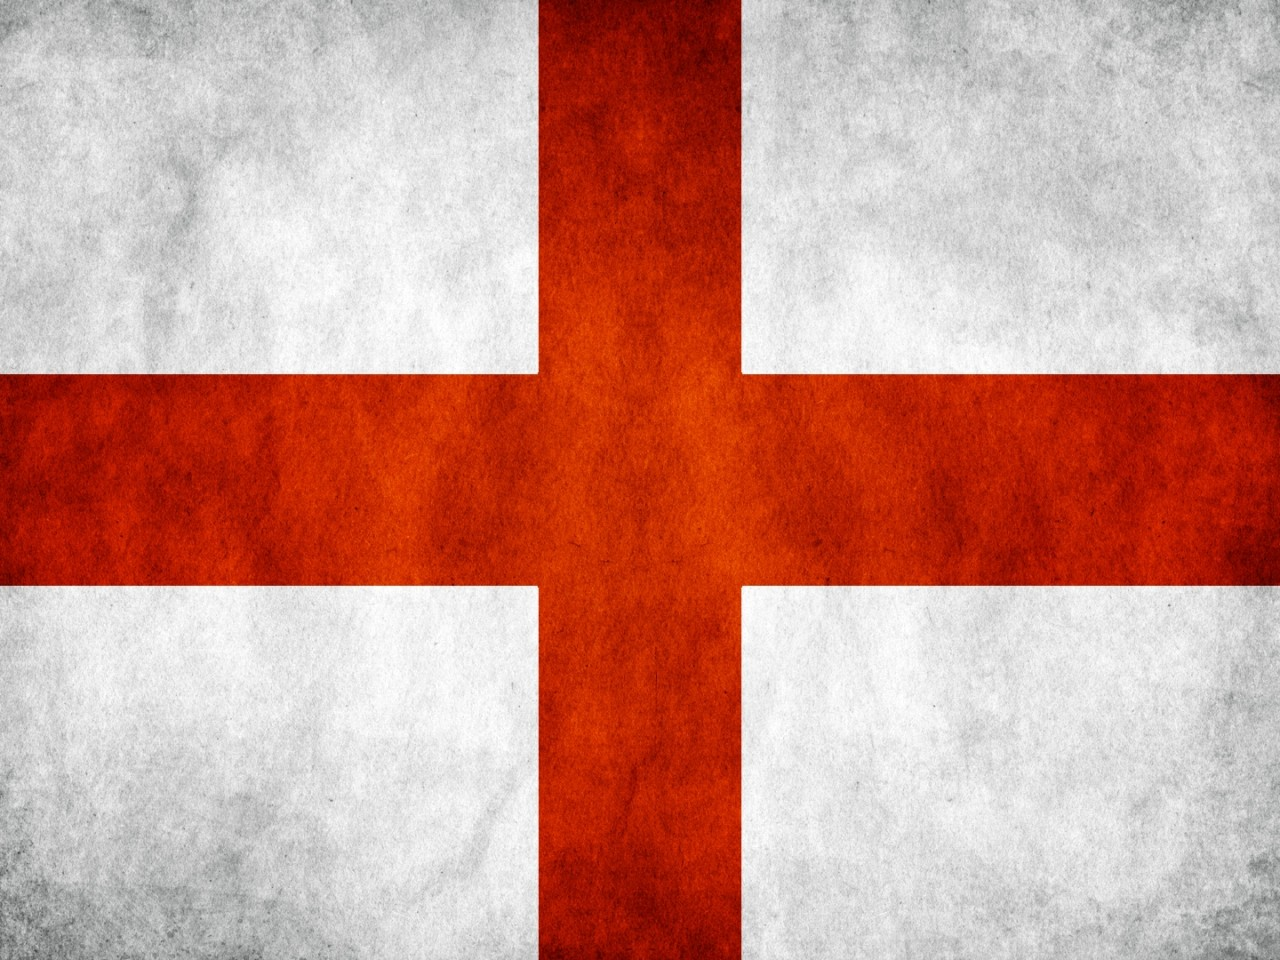 England Flag Wallpaper Hd Wallpapers